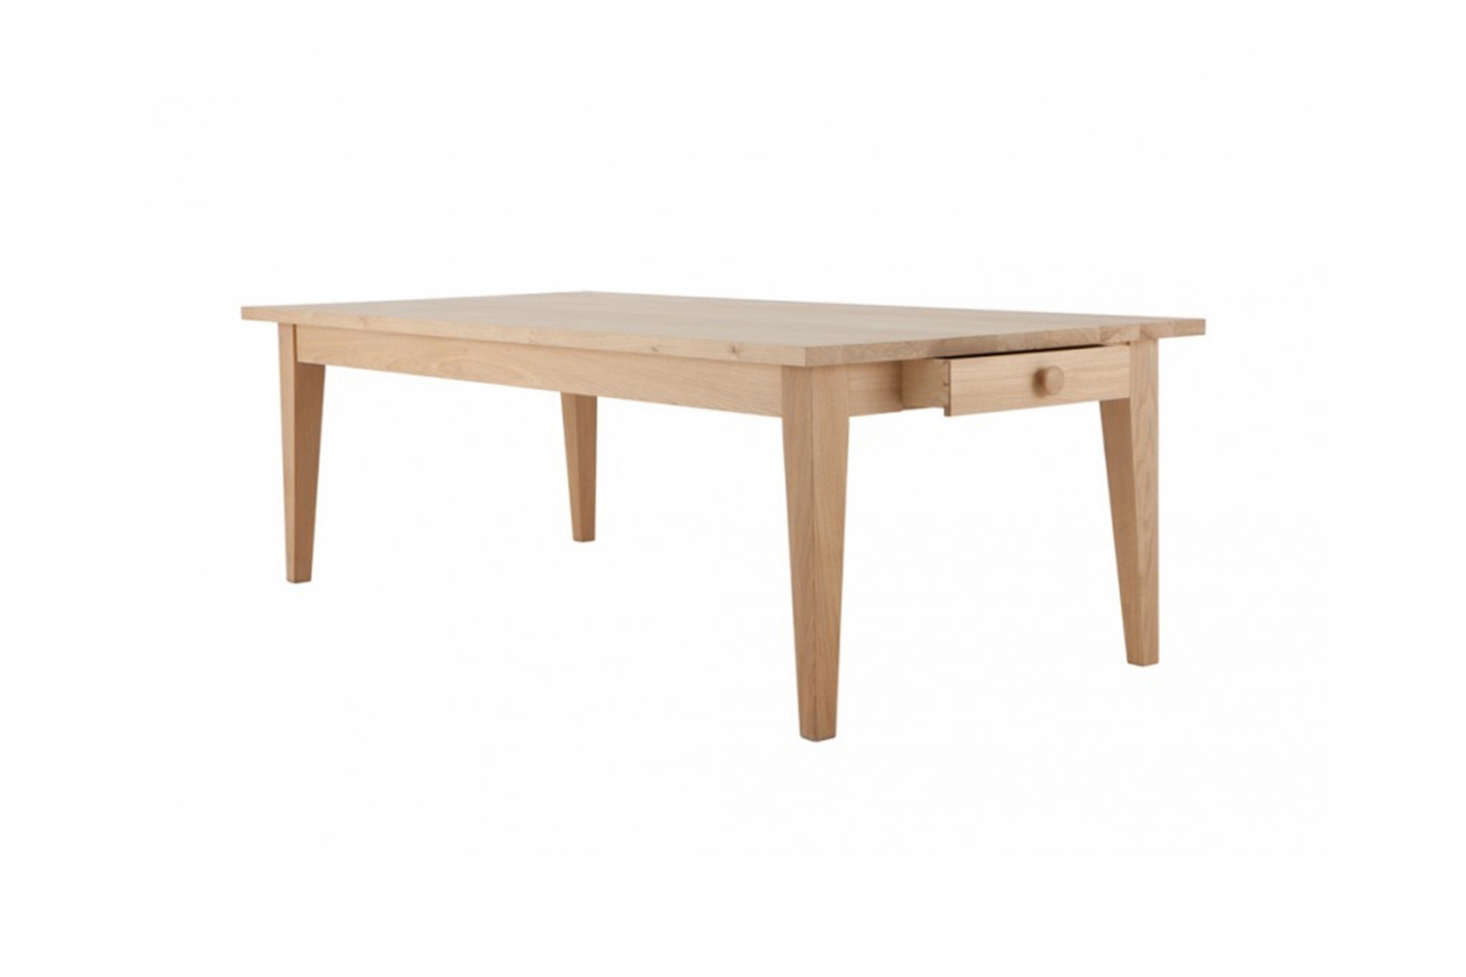 The solid oak 110-centimeter-wide (43-inch-wide)Wardour Dining Table is on sale for £5,895 ($7,743) at Conran in the UK.